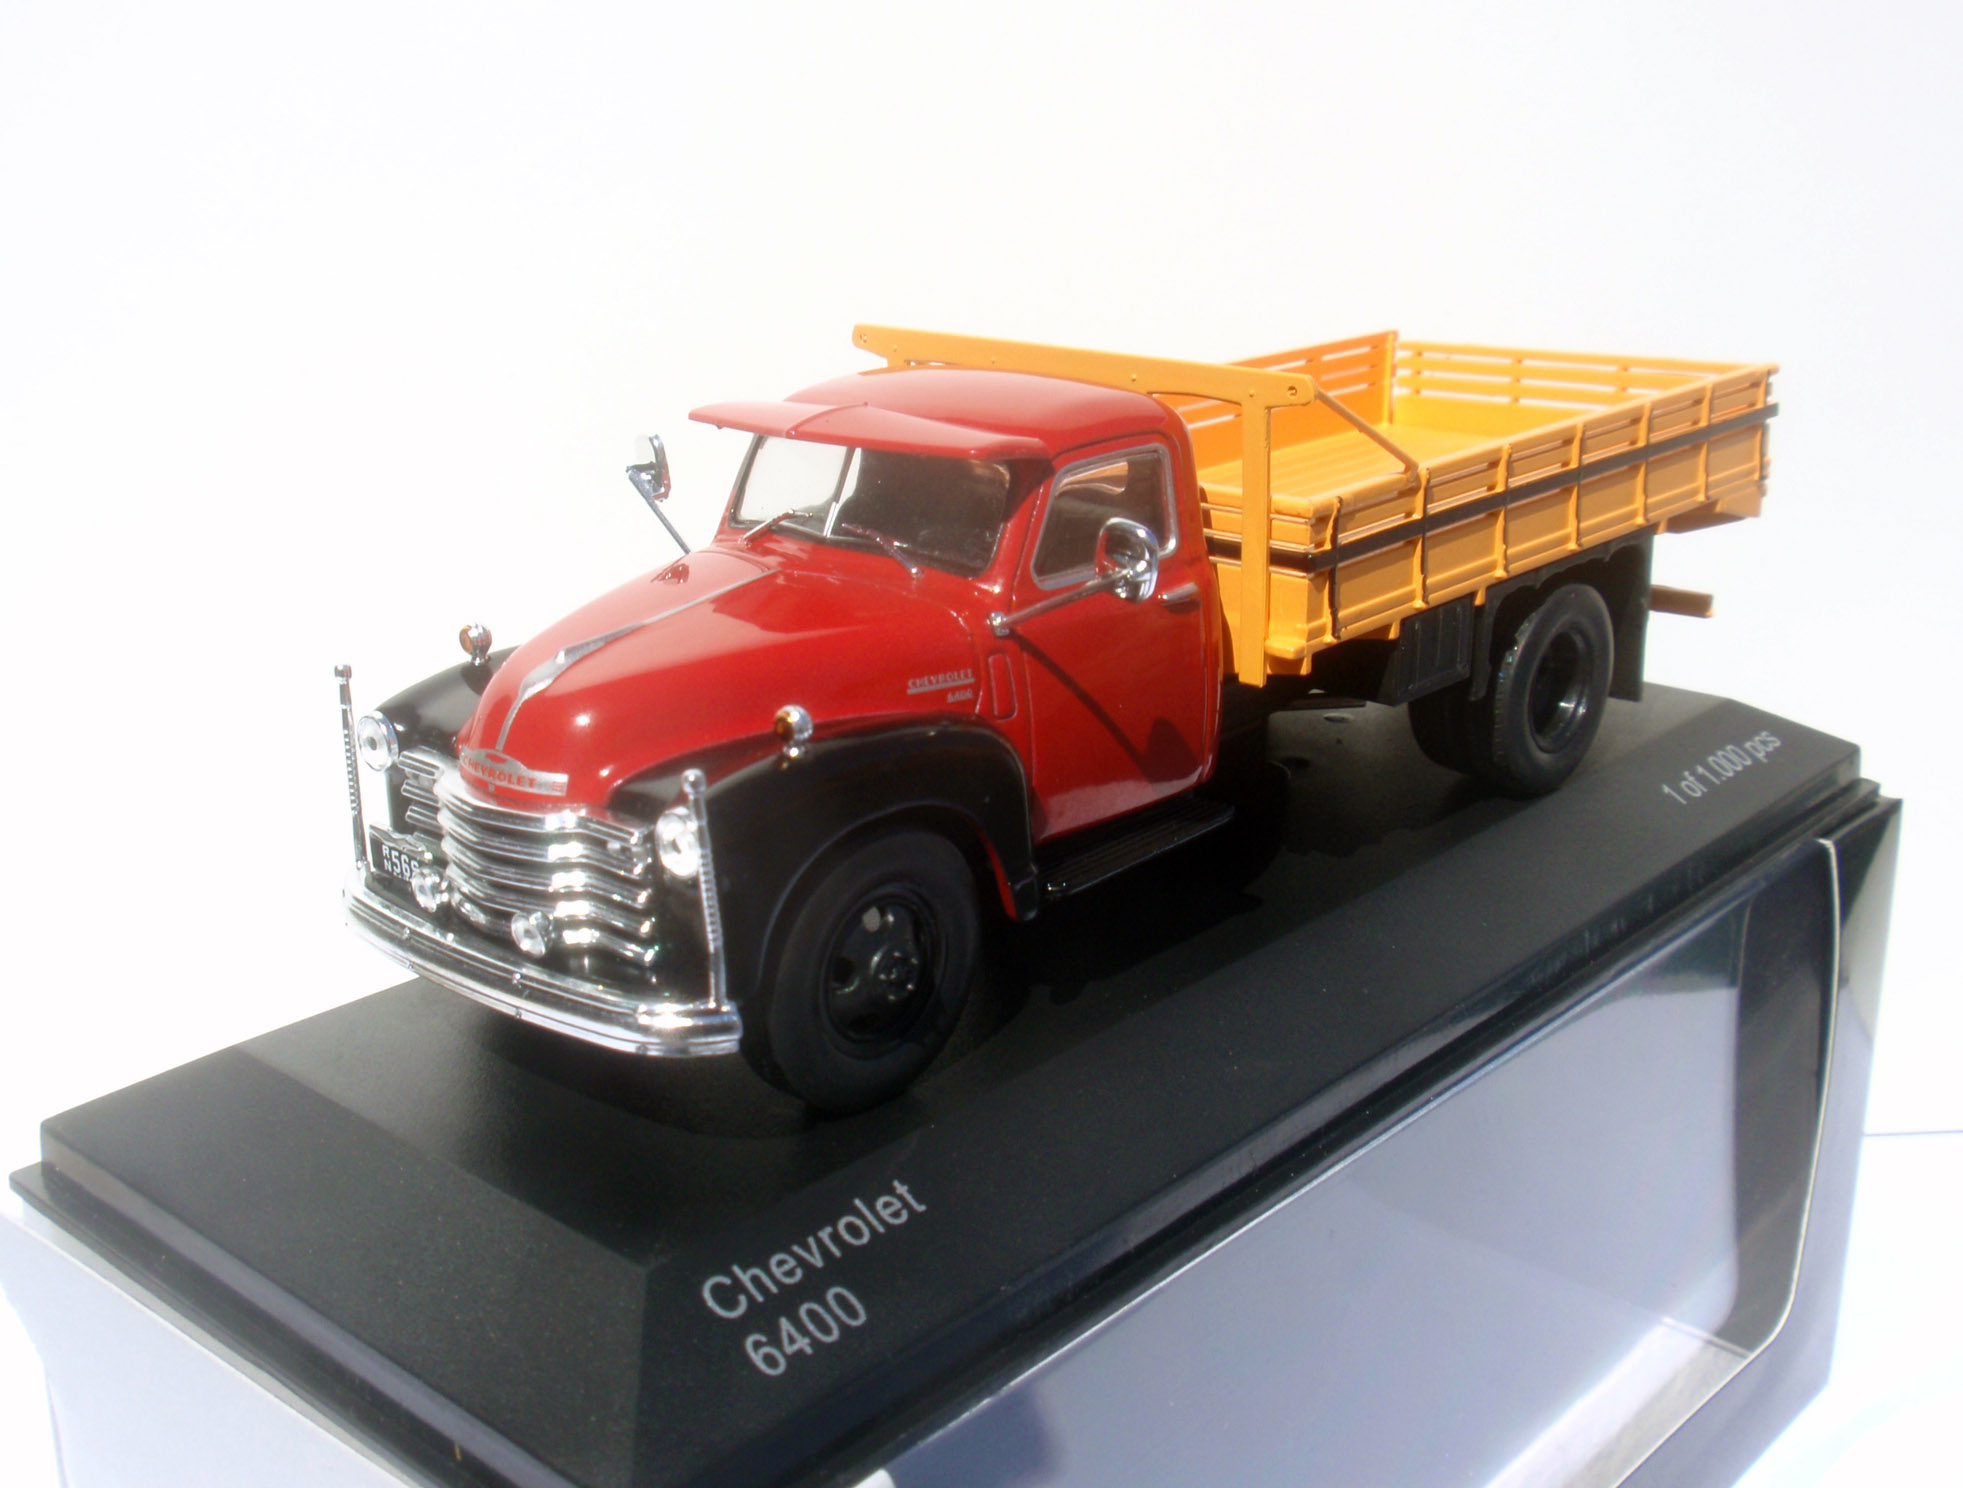 Chevrolet6400Whiteboxfront.jpg